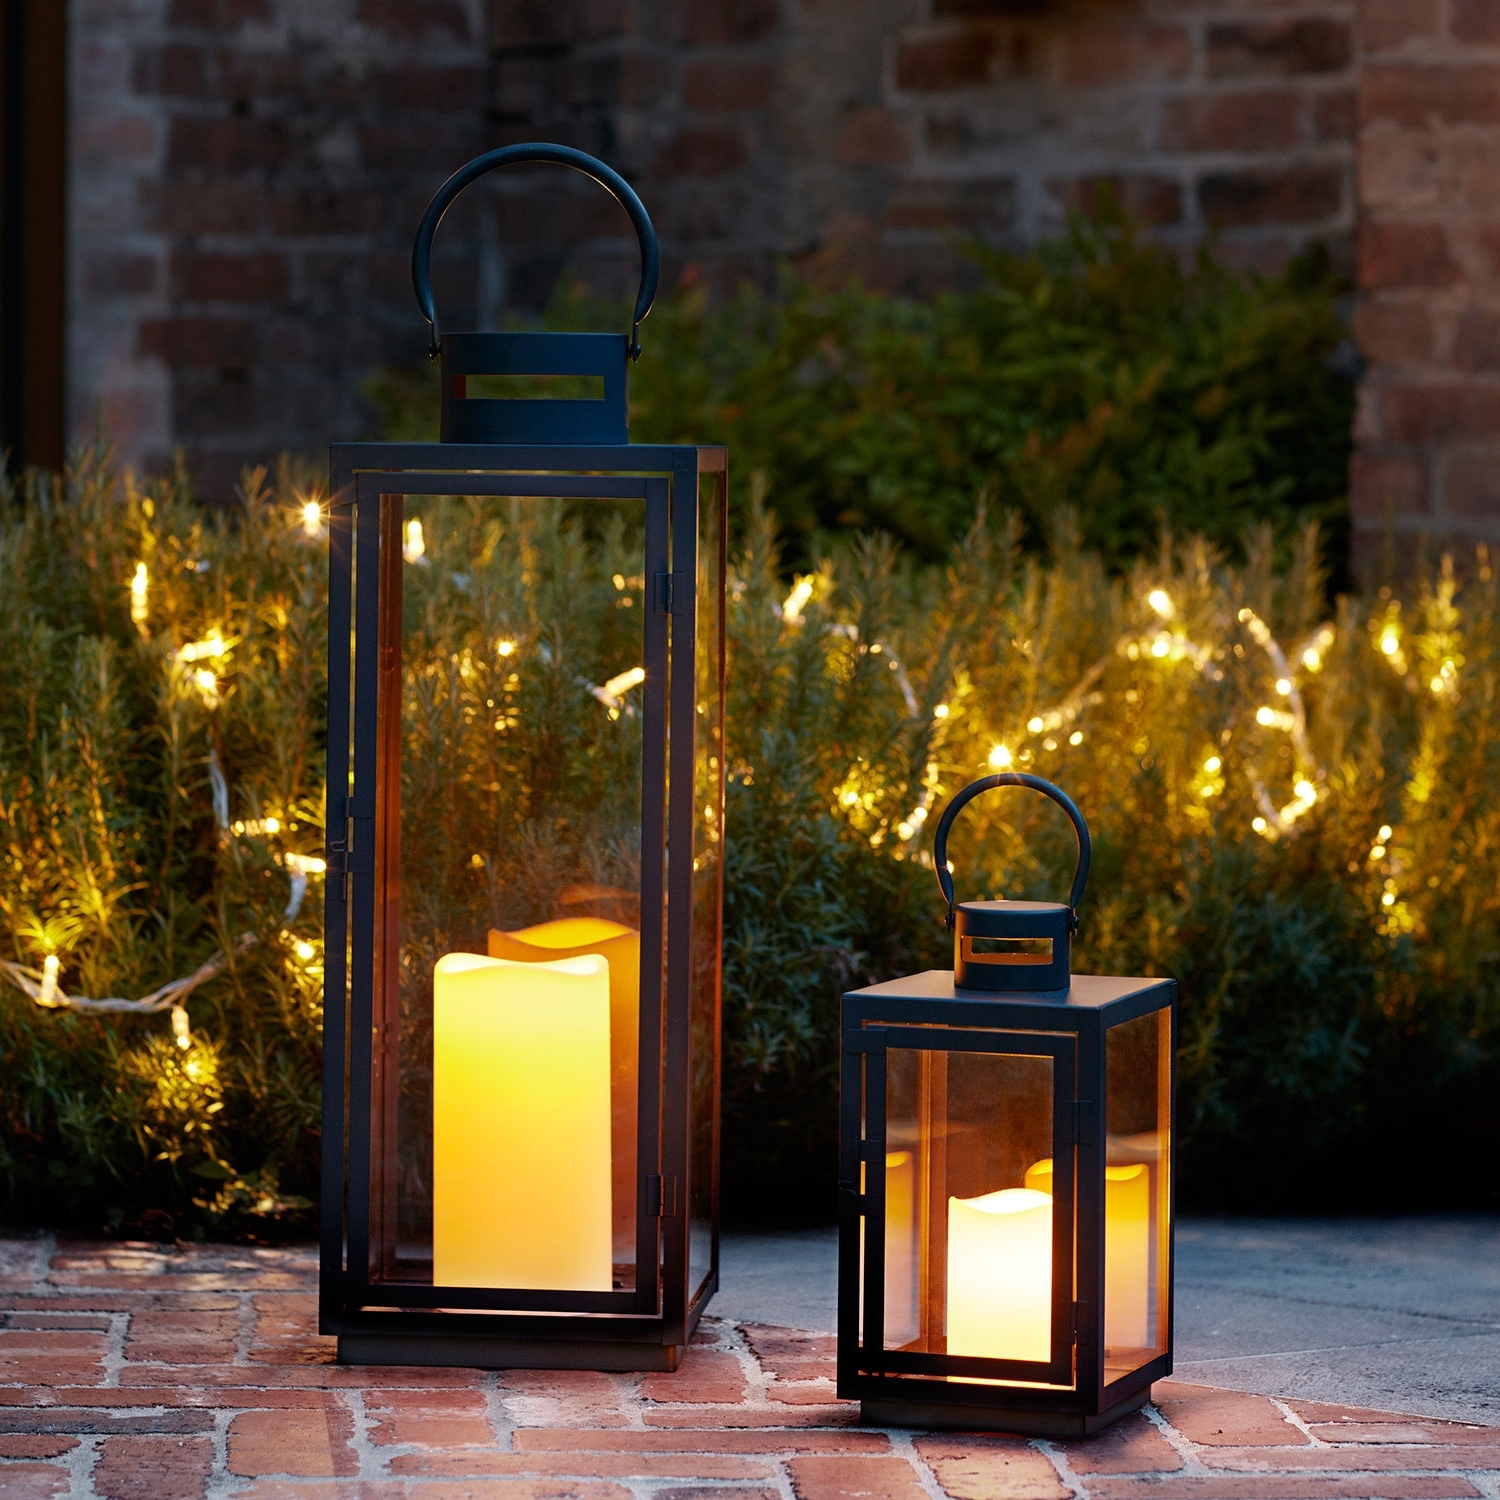 Outdoor Décor Candle Lanterns , Garden Lighting , Garden & Patio Inside Favorite Outdoor Candle Lanterns For Patio (View 16 of 20)